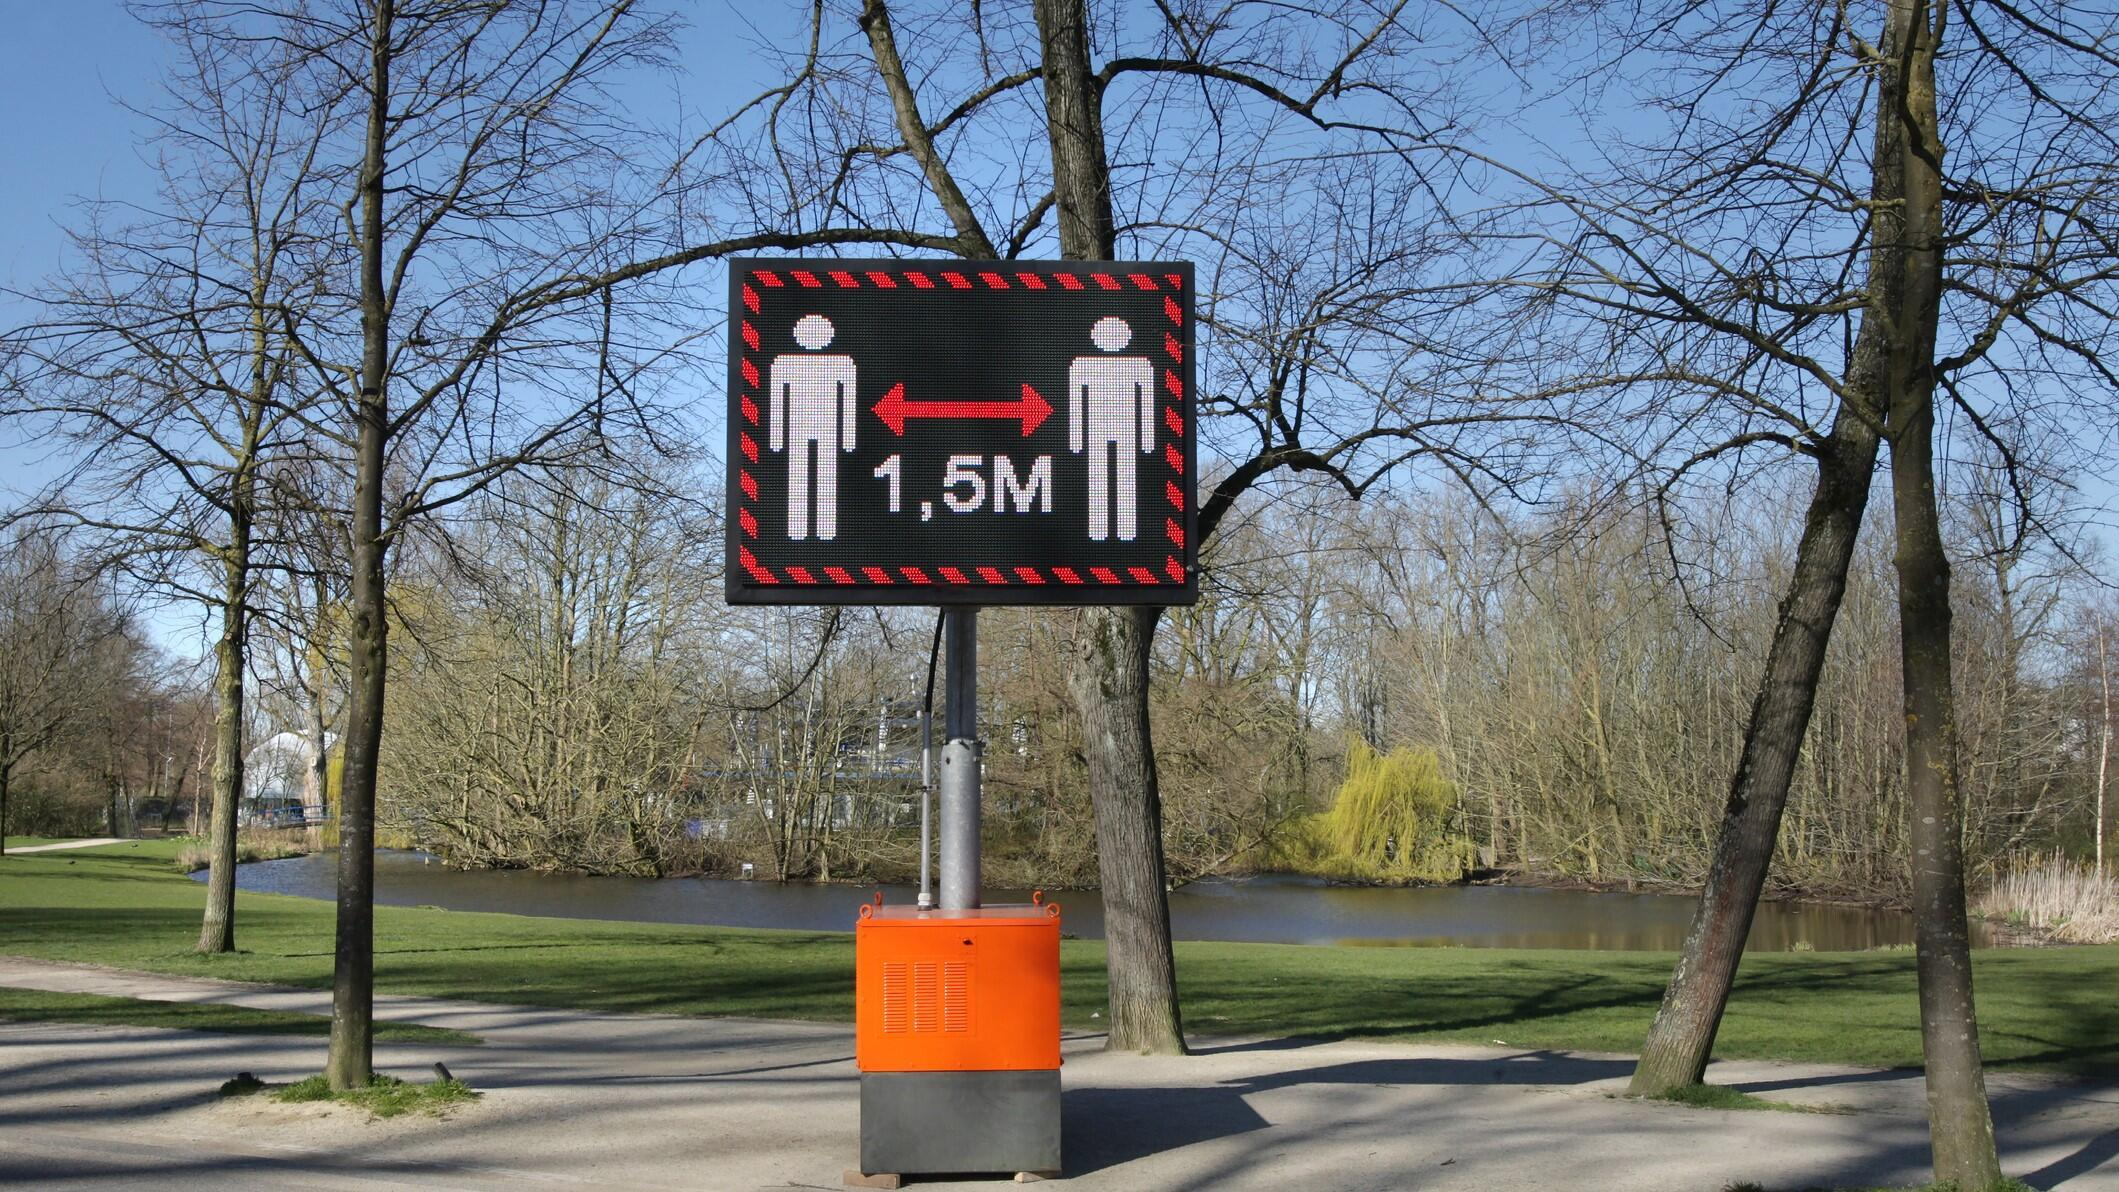 A sign in Amsterdam, Netherlands, indicating the social distance required to avoid the spread of Covid-19. May 2020.